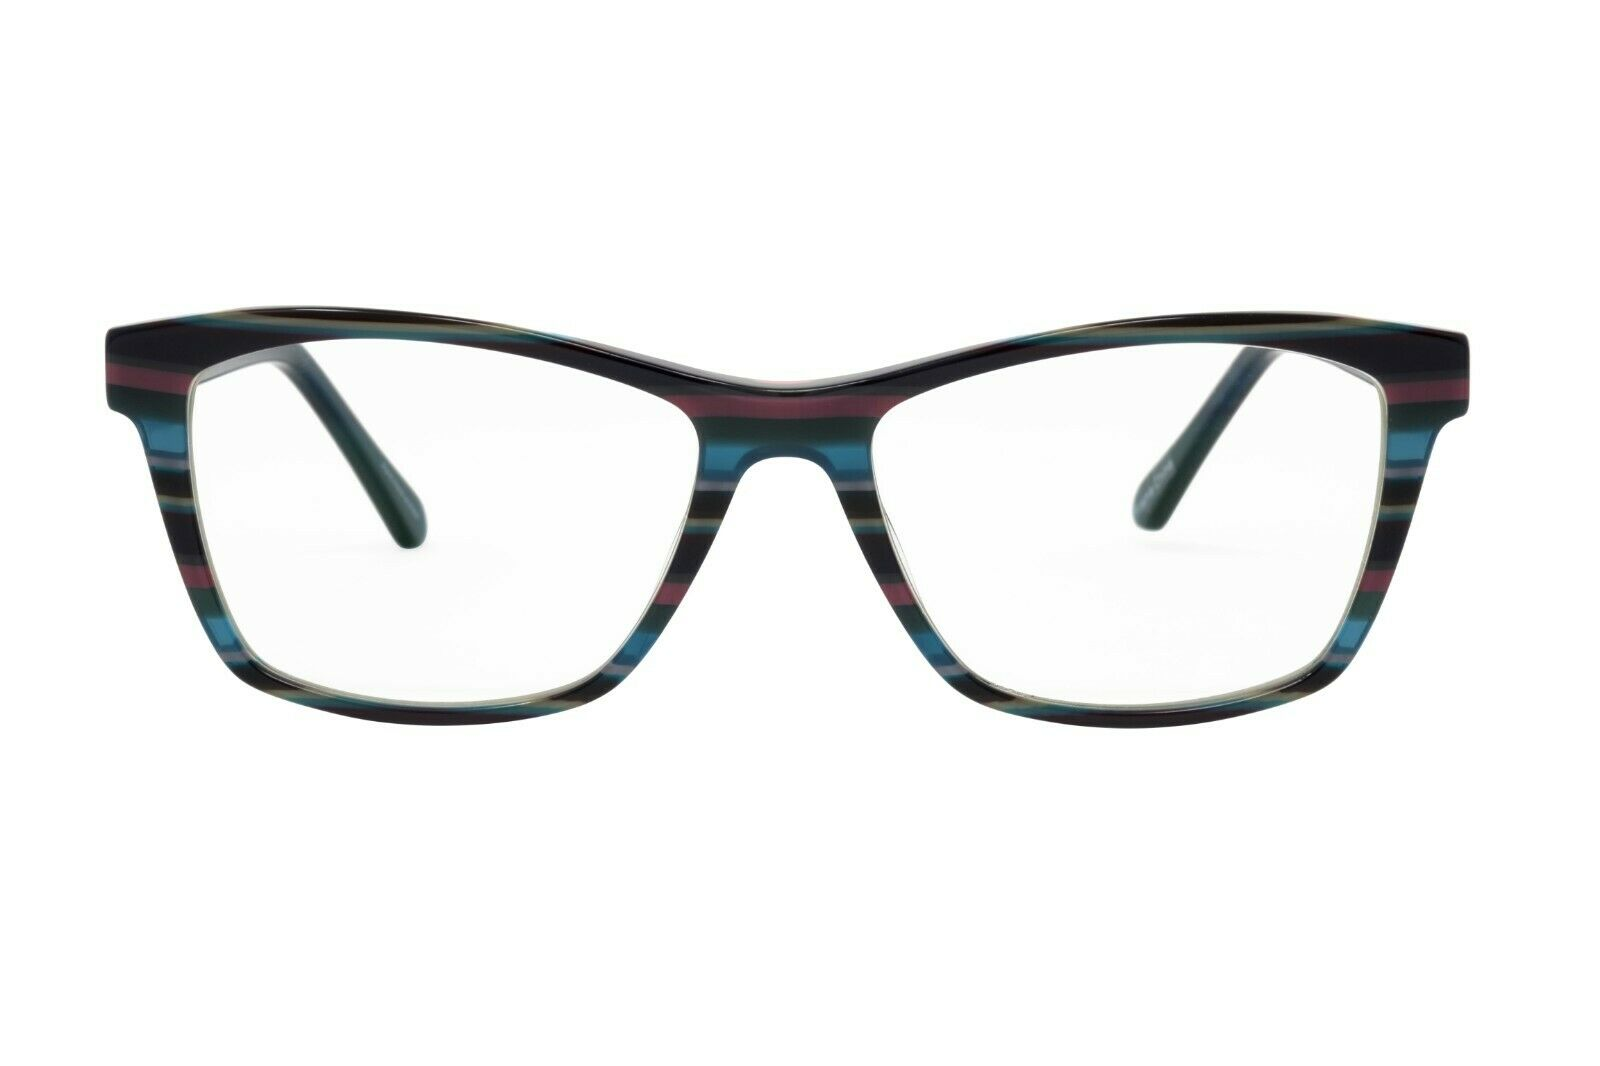 Computer Eyeglasses Blue Light Blocking lens ALWAYS Verona Love Handmade acetate - Blue Light Blocking Eyewear